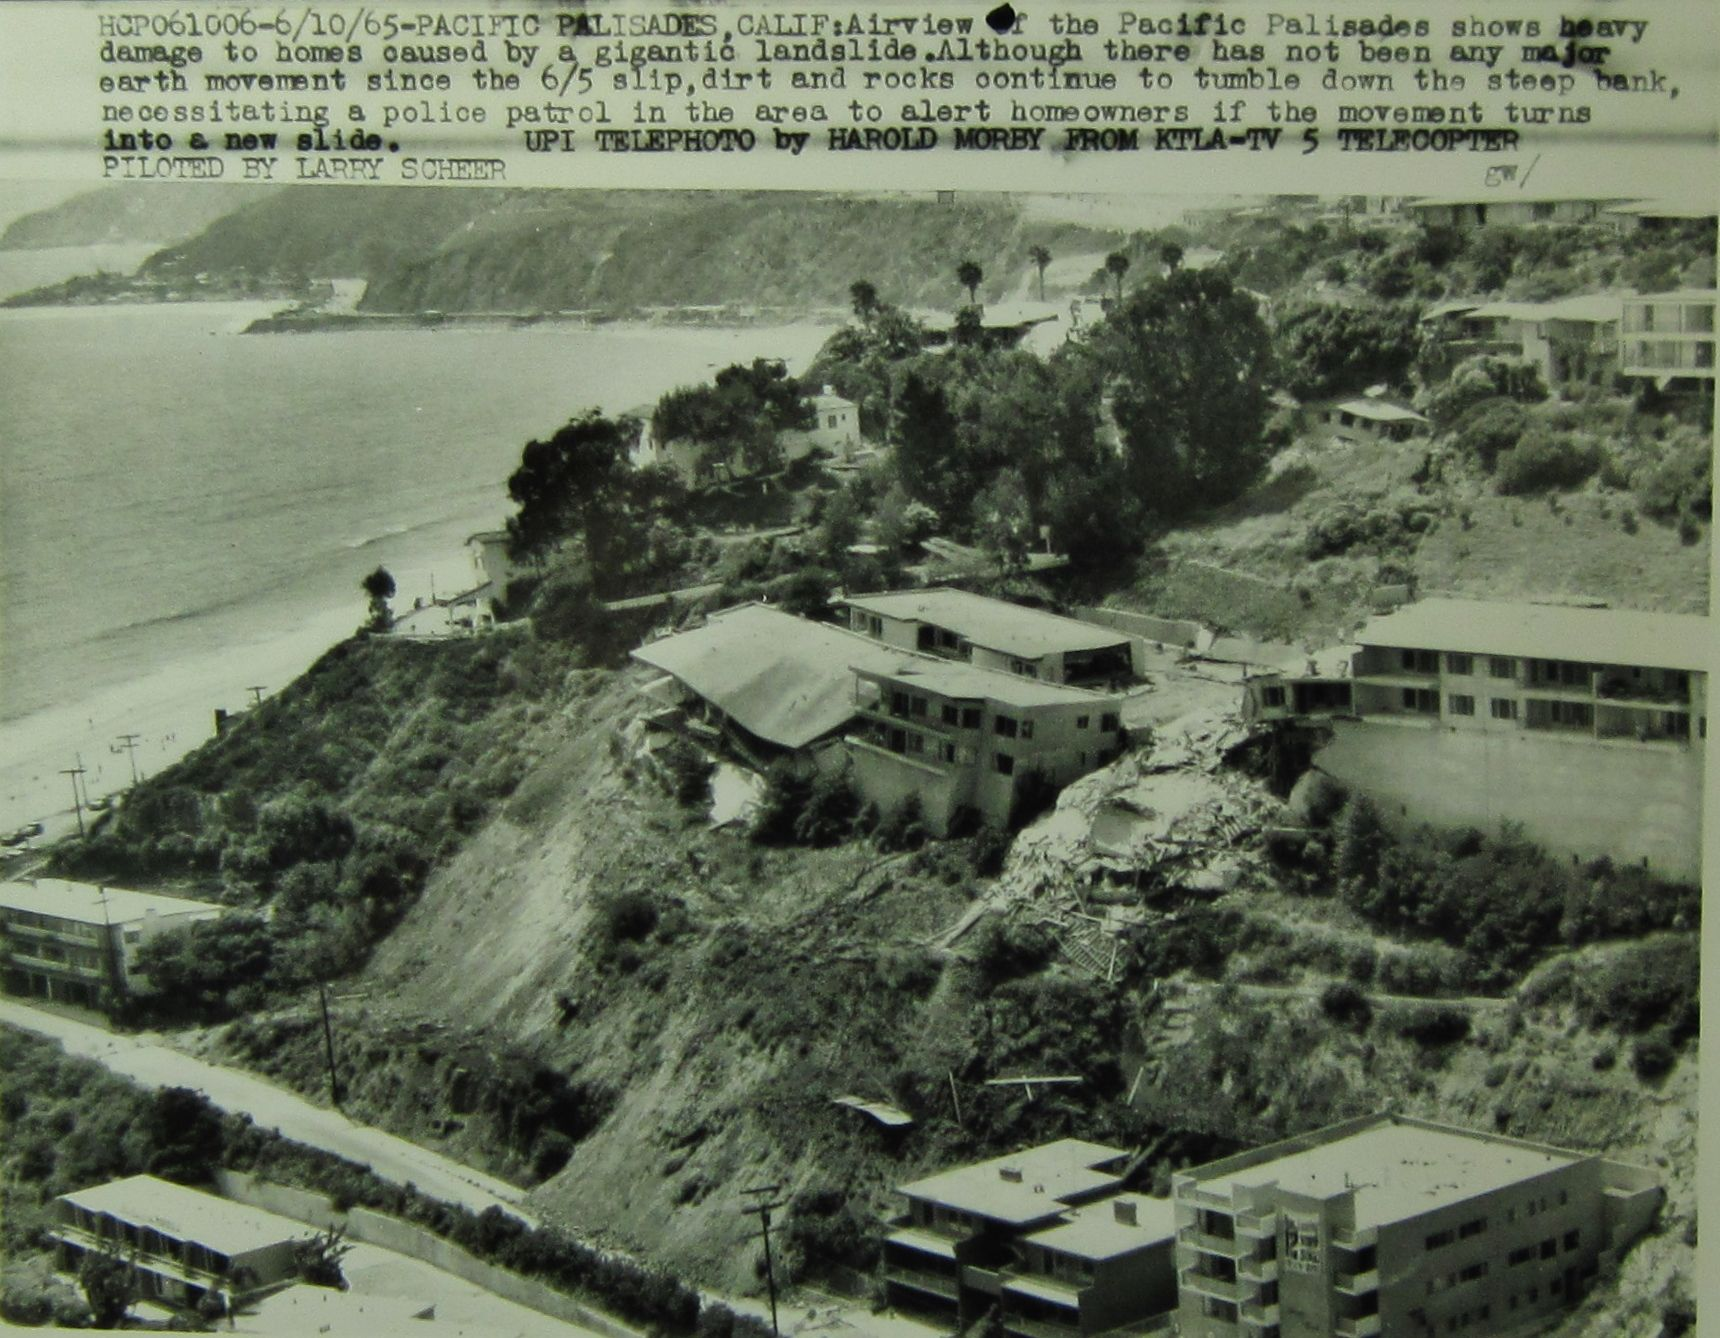 Photo 1965 landslide sunset and pacific coast highway for Where is pacific palisades